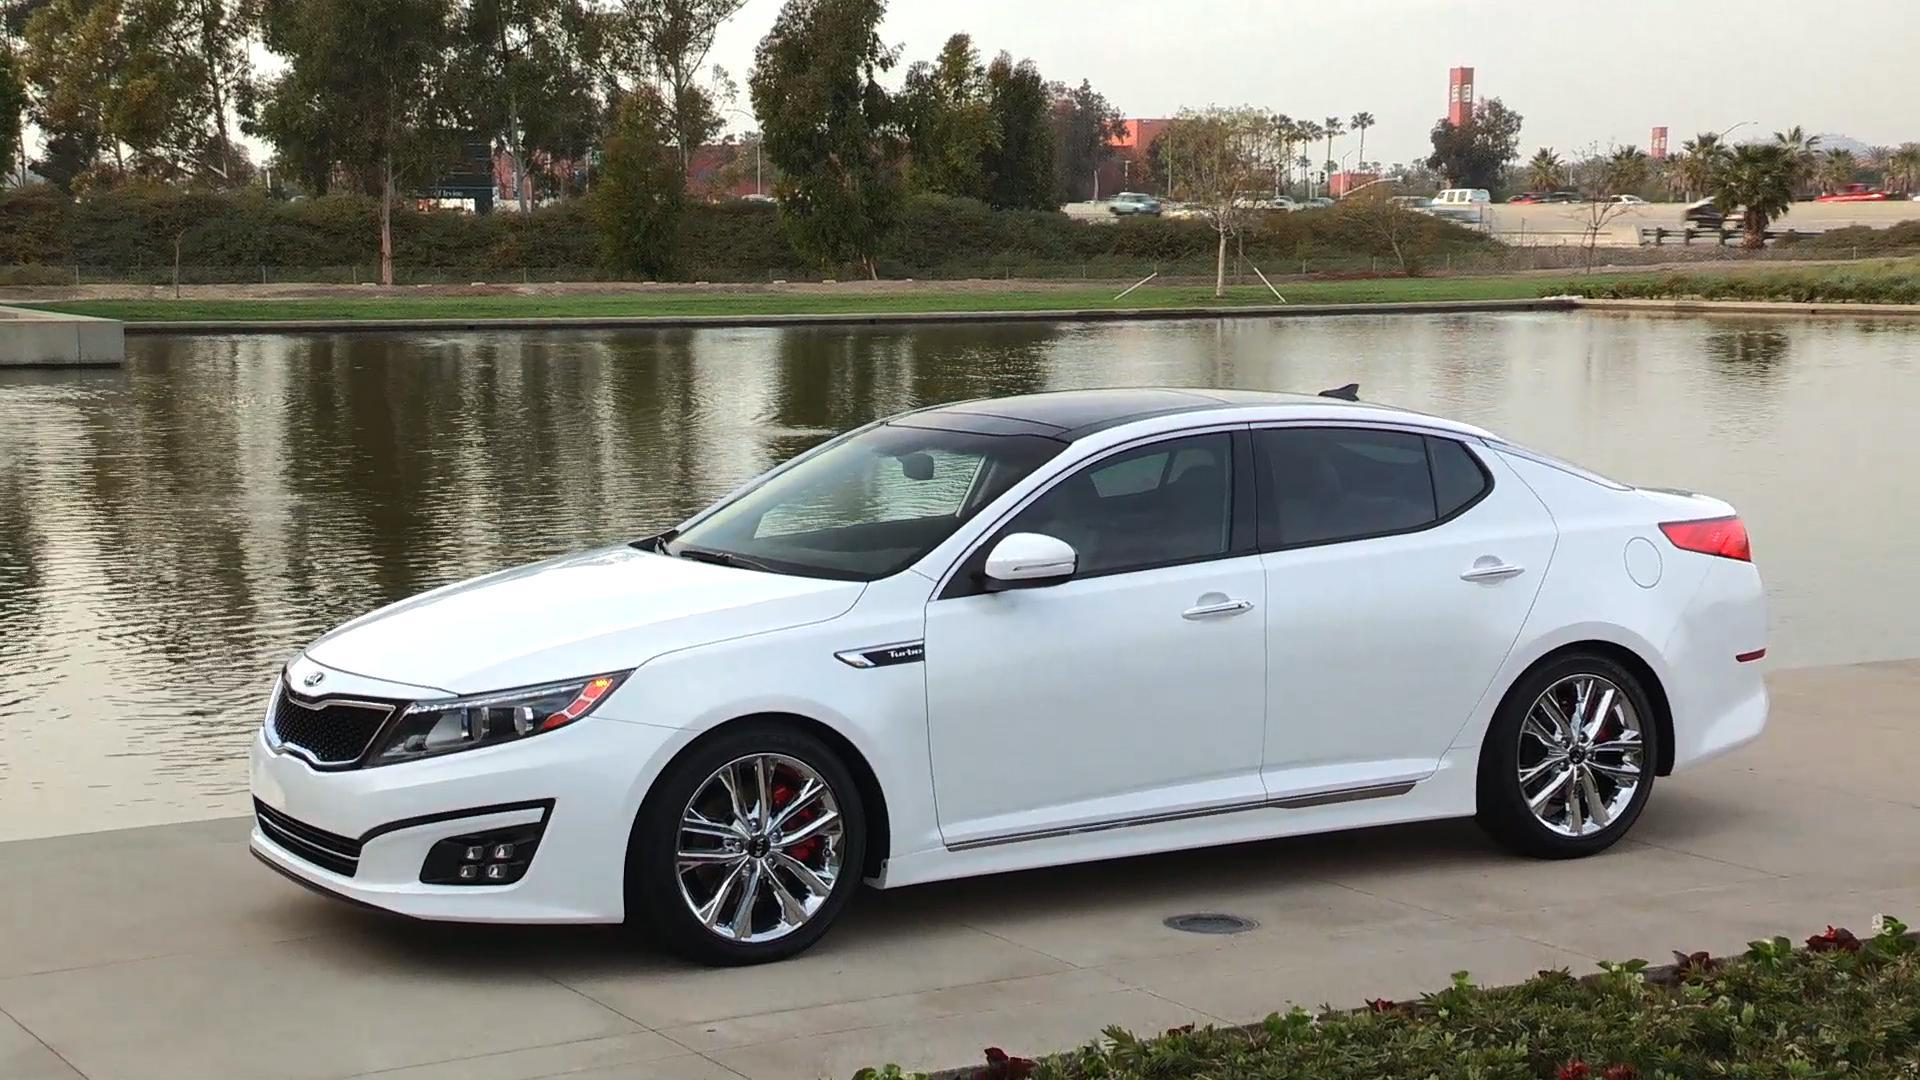 2015 Kia Optima News and Information - conceptcarz.com